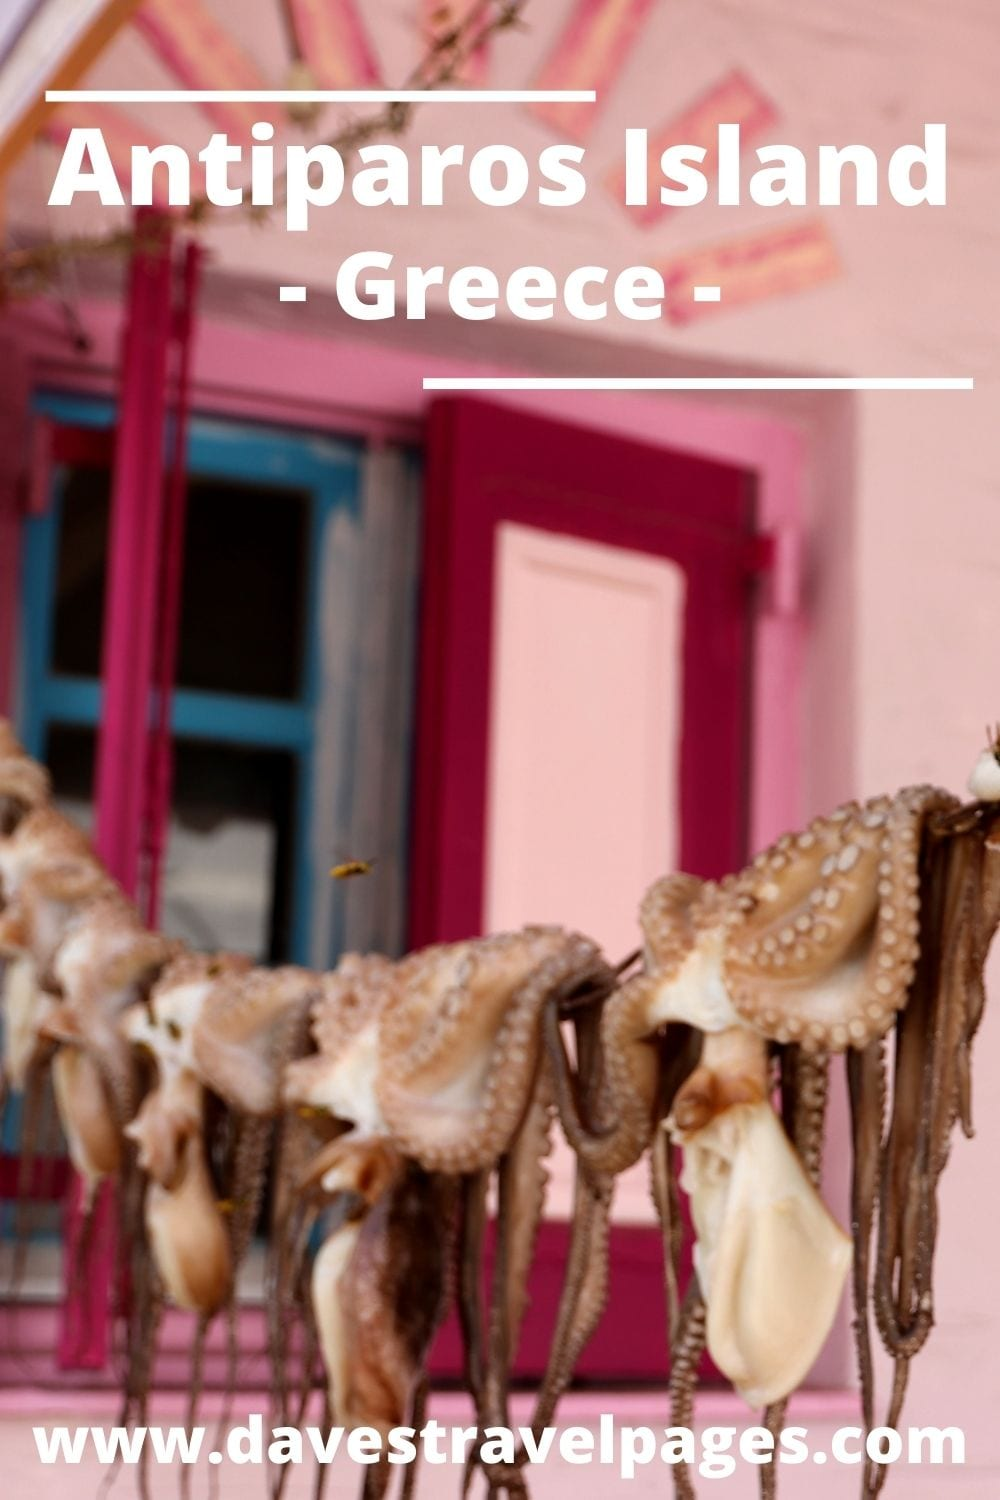 How to get from Mykonos to Antiparos island in Greece